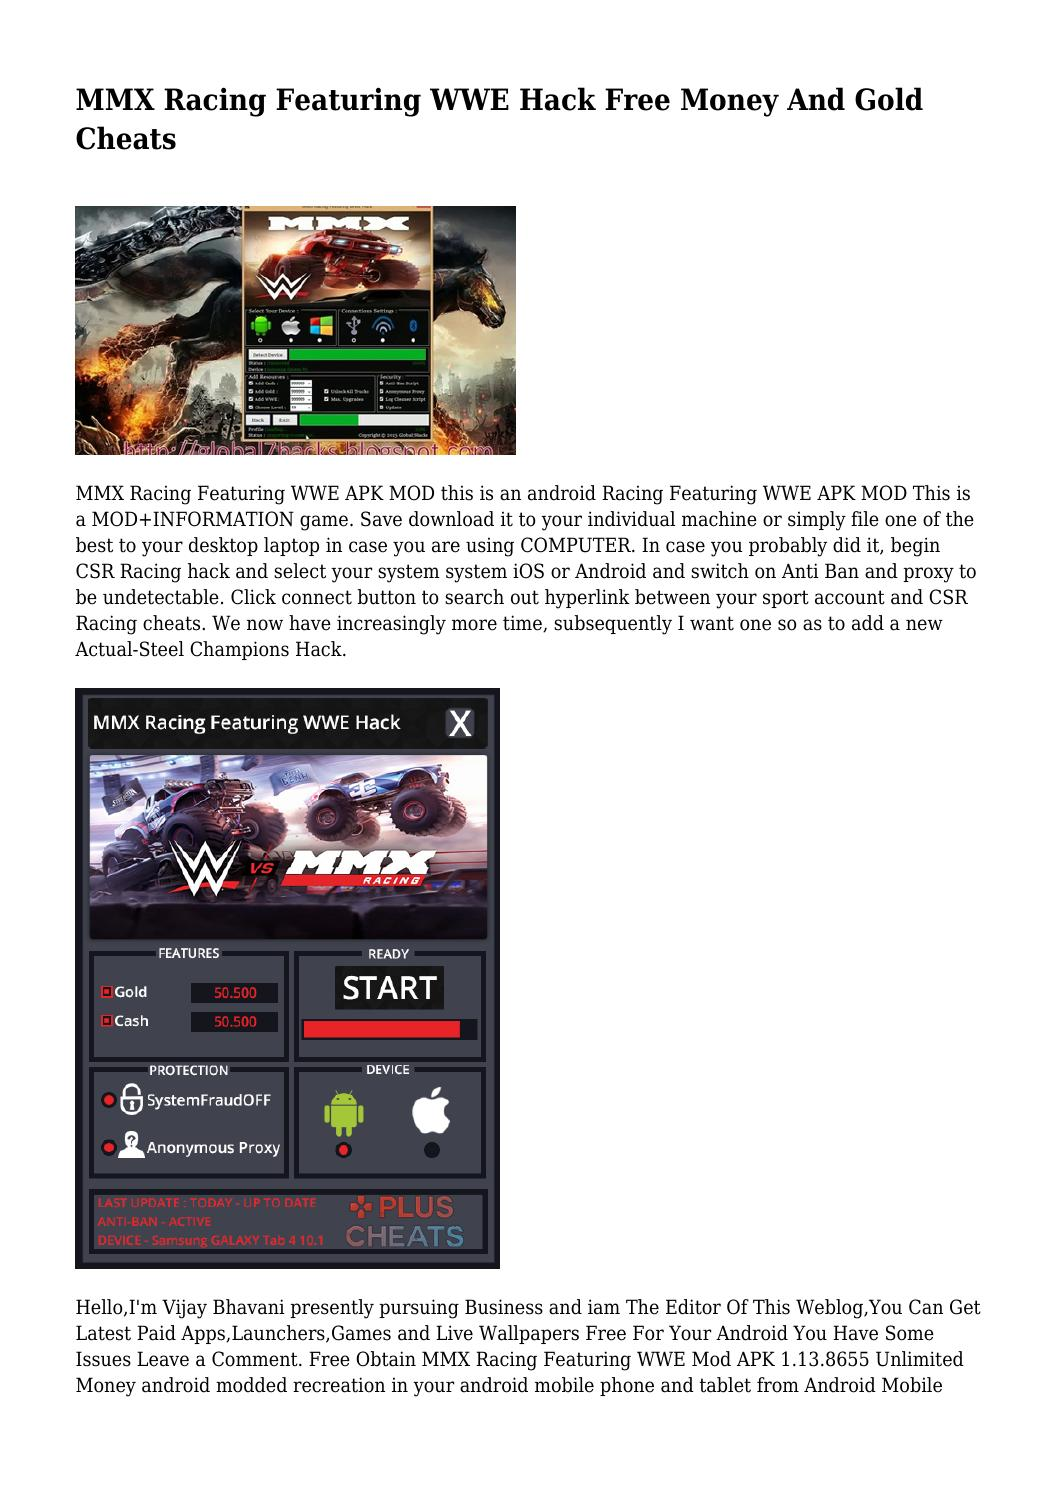 MMX Racing Featuring WWE Hack Free Money And Gold Cheats by